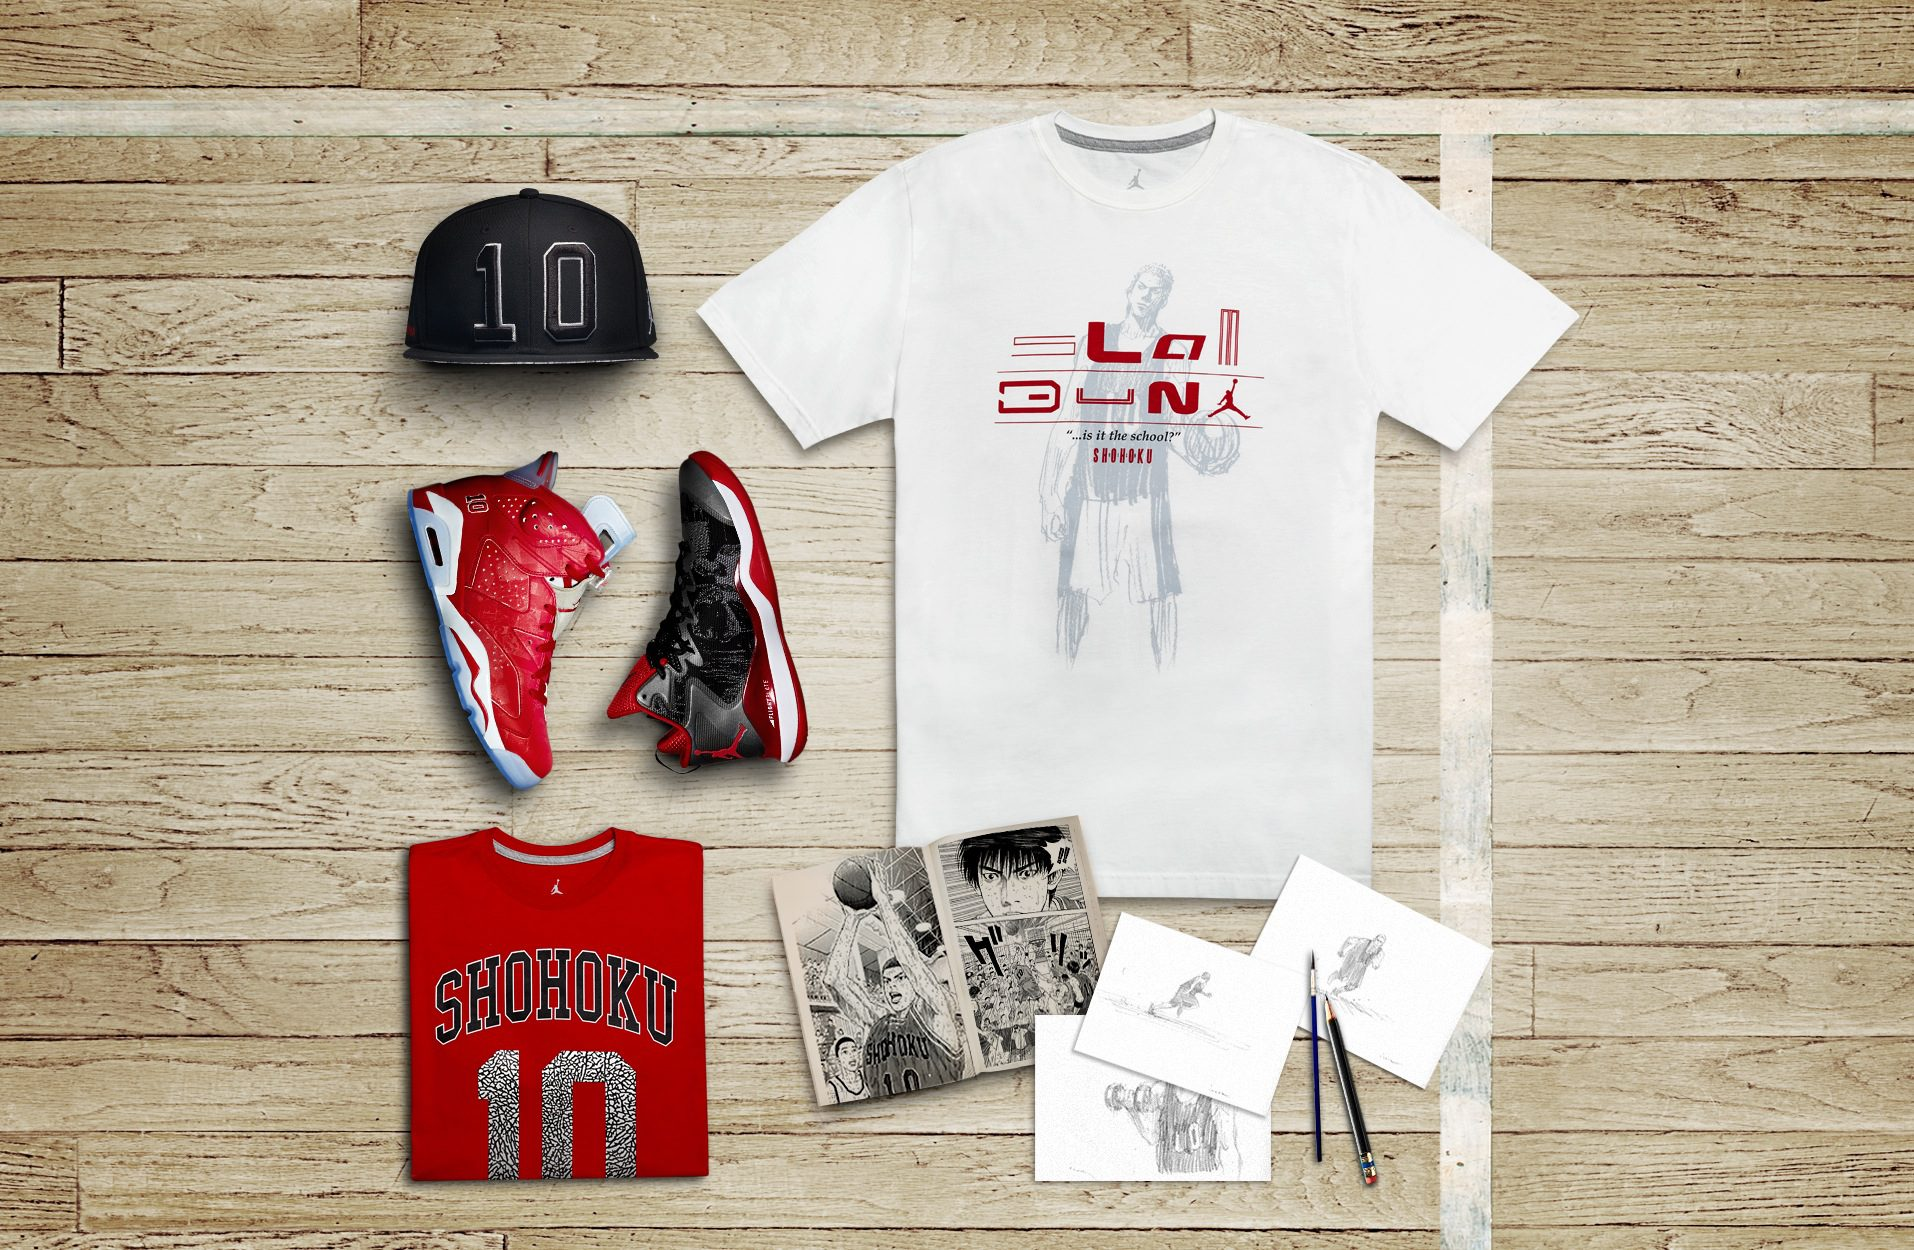 bf57a079f457 ... Slam Dunk box two 34103 Slam Dunk graphic two 34095  Slam Dunk laydown 34068 Slam Dunk tee 34097 Slam Dunk tee ten 34101 SLAMDUNK  GRAPHIC.